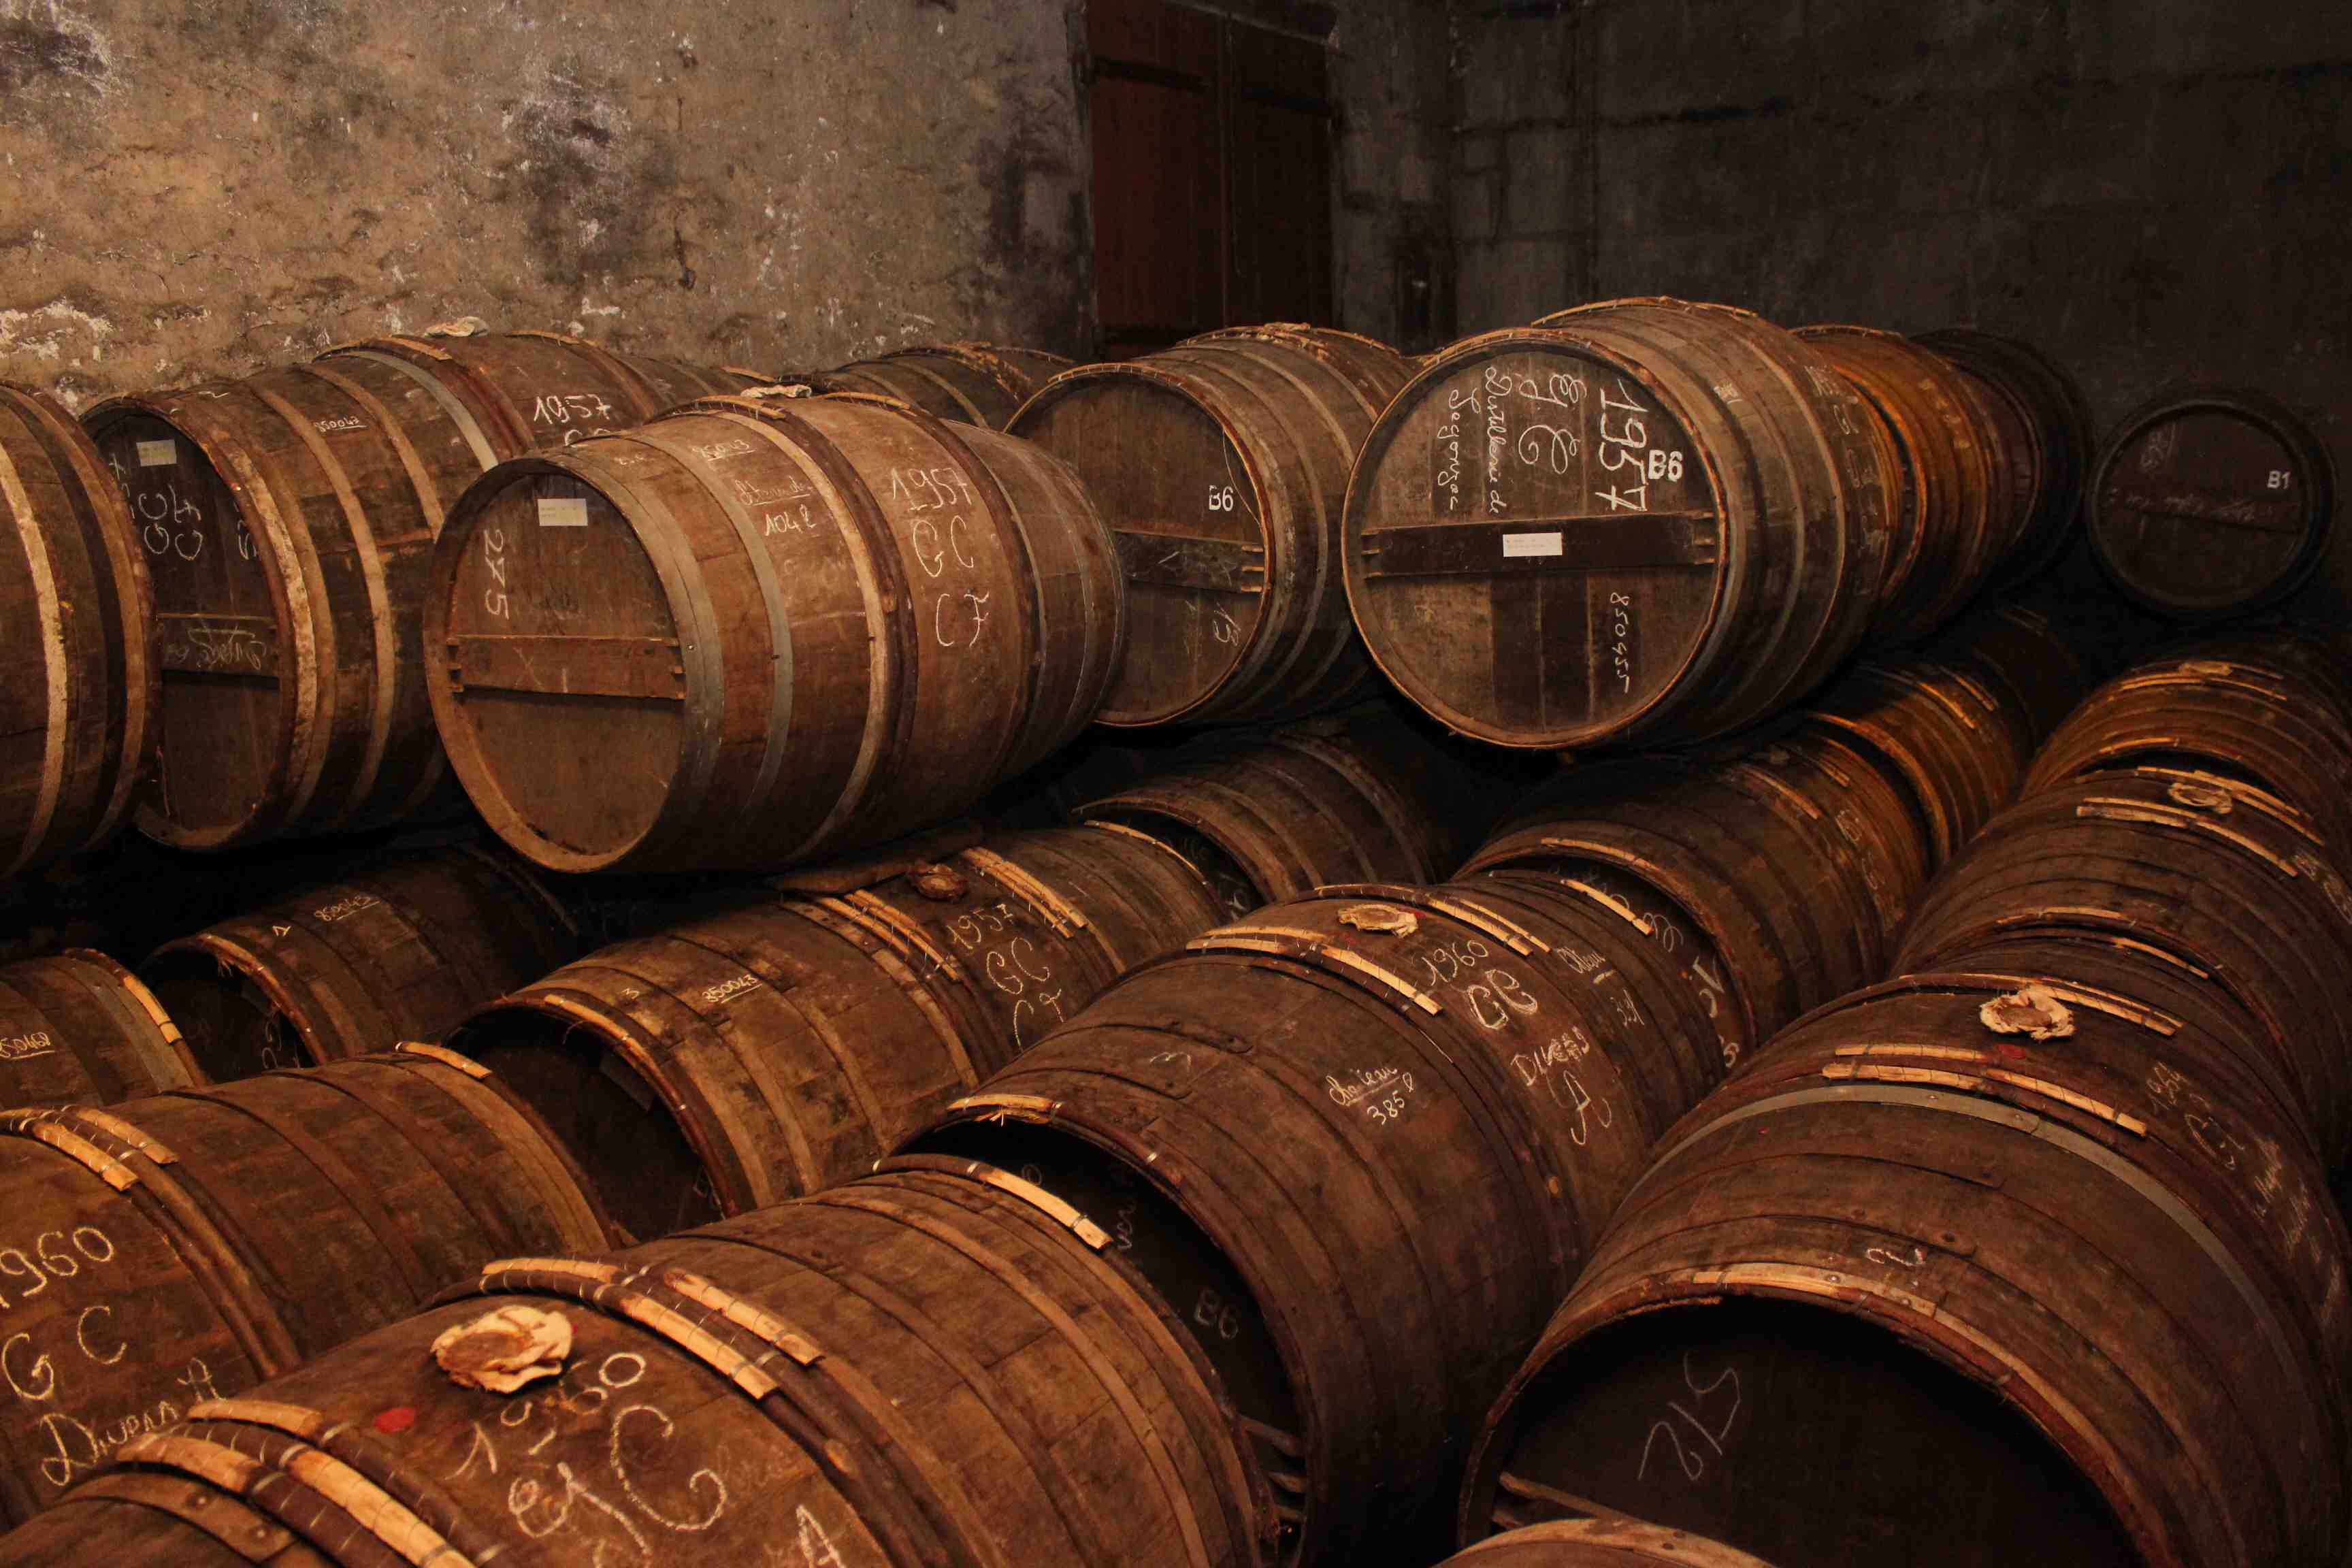 Double-Matured Cognac: A New Trick for an Old Eau-de-Vie